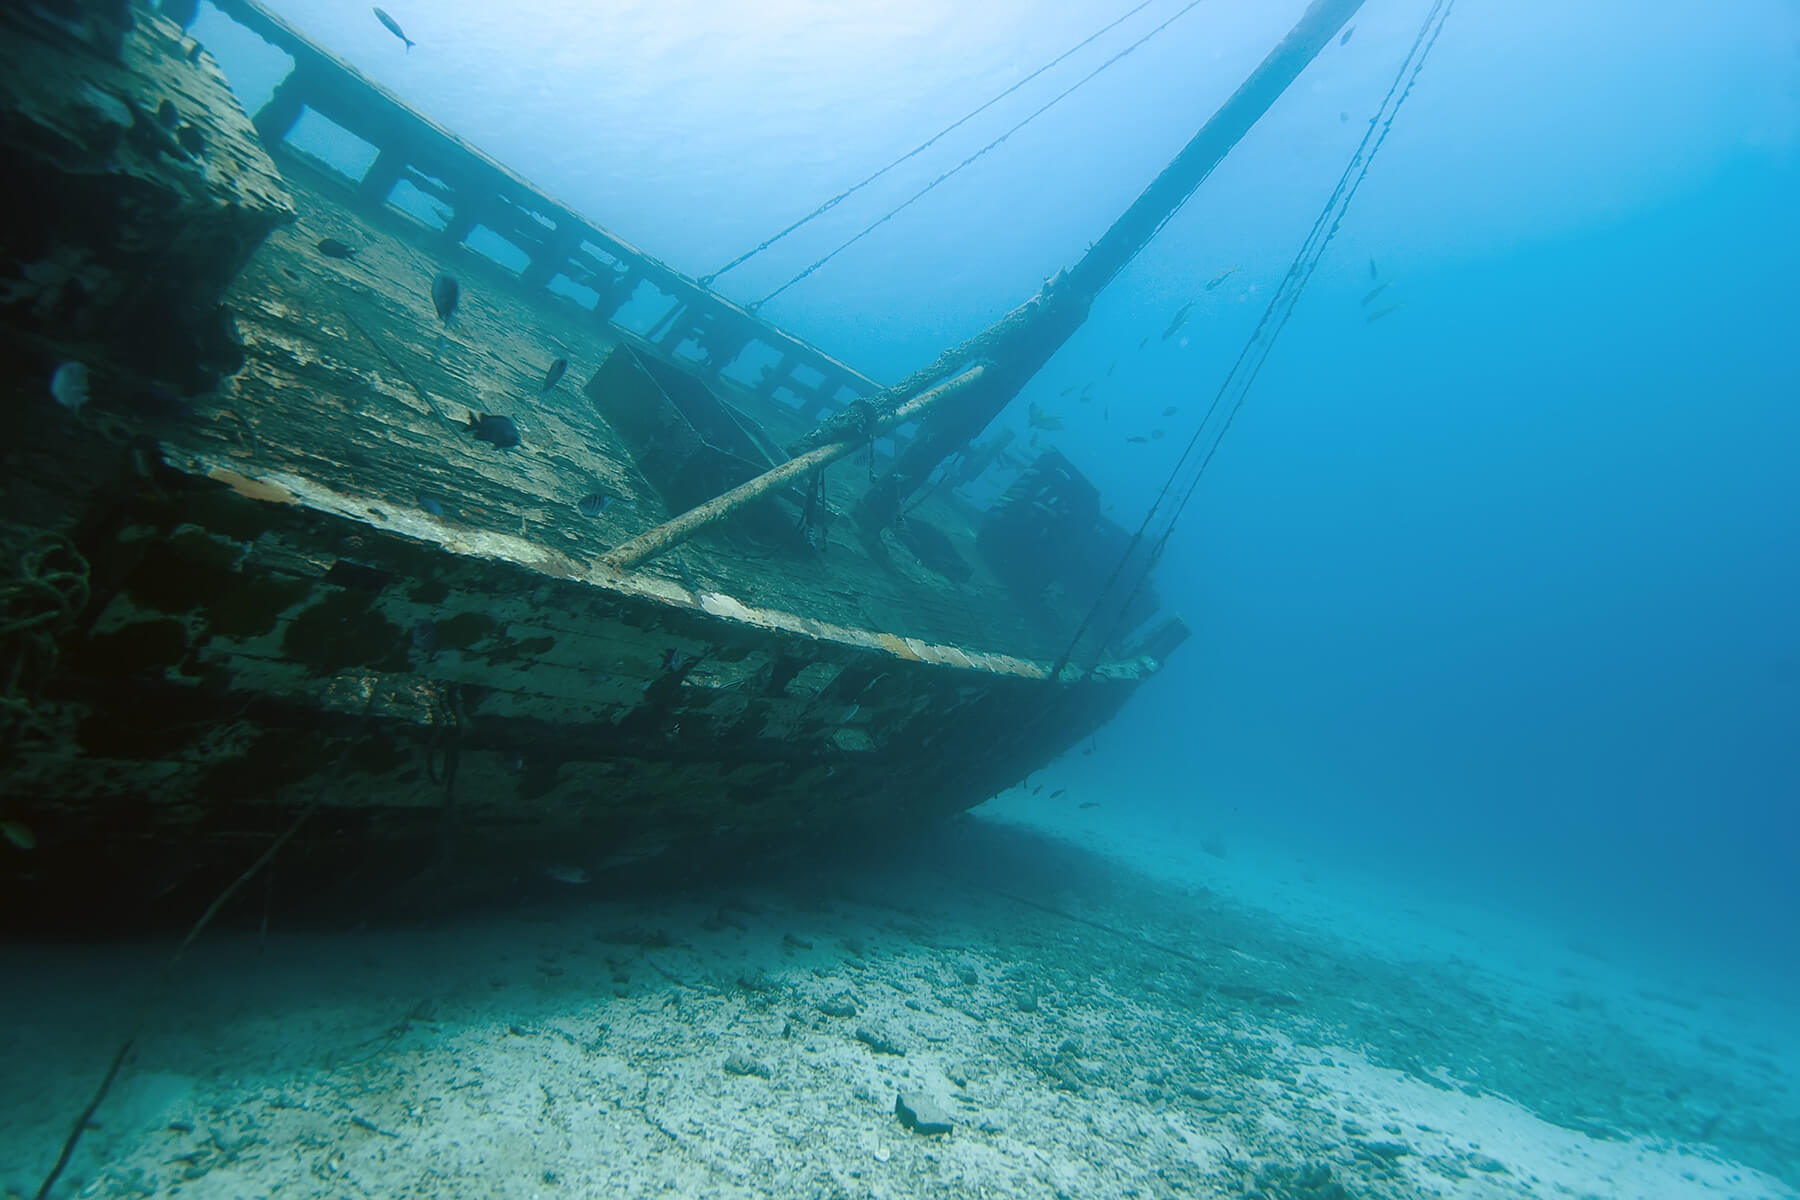 Shipwrecks | Chesapeake Bay Program